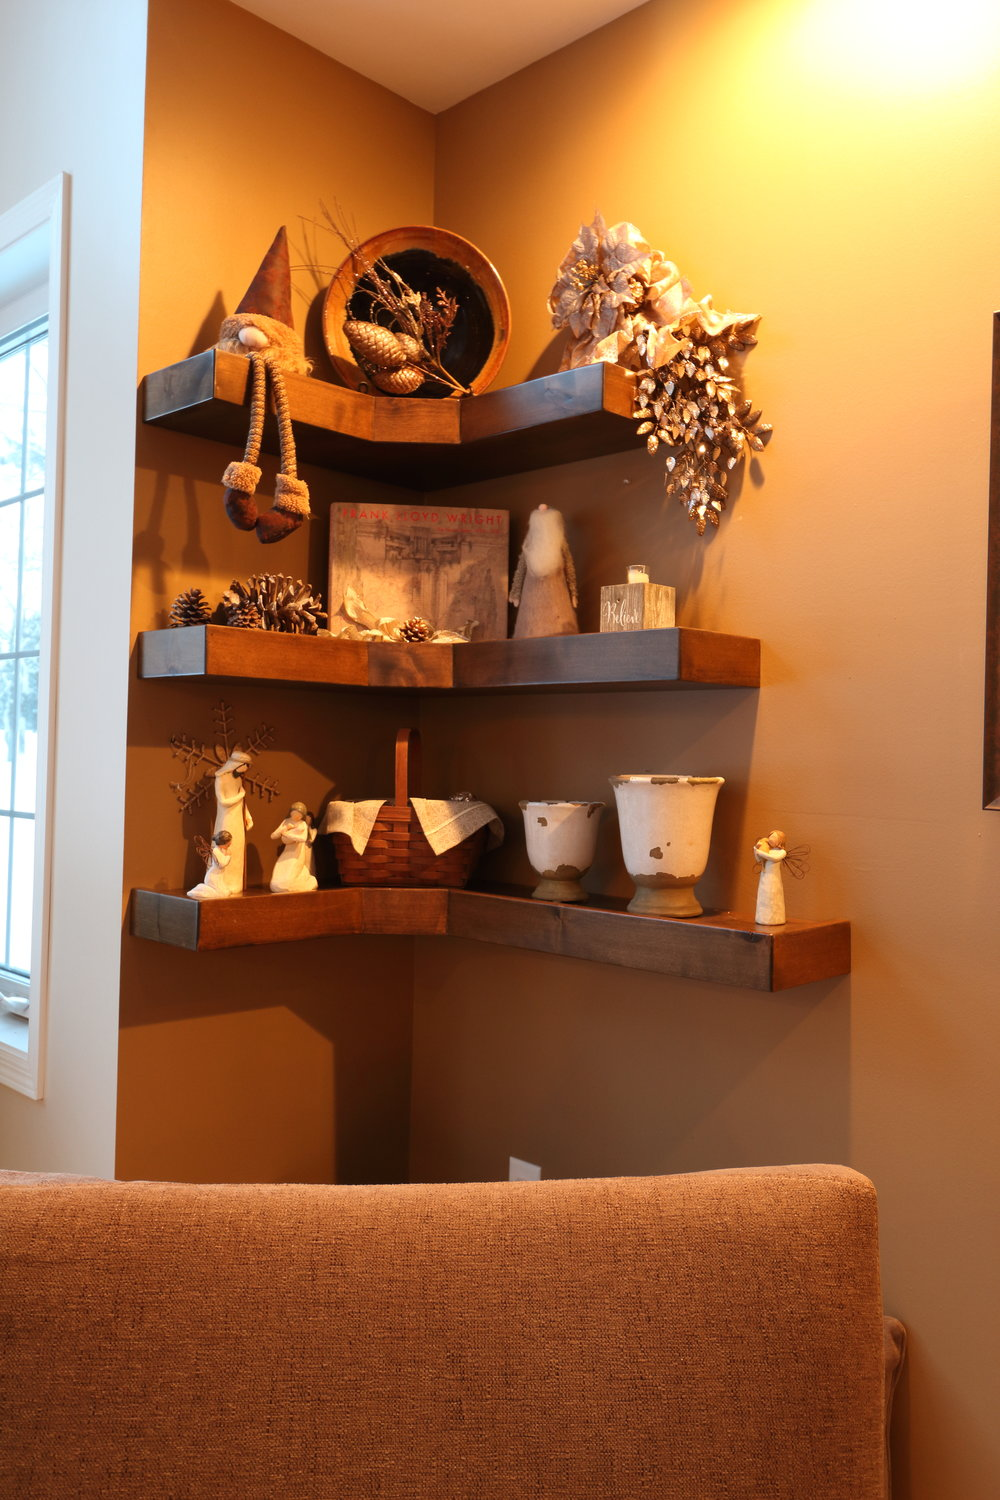 Bracketless Corner Shelving